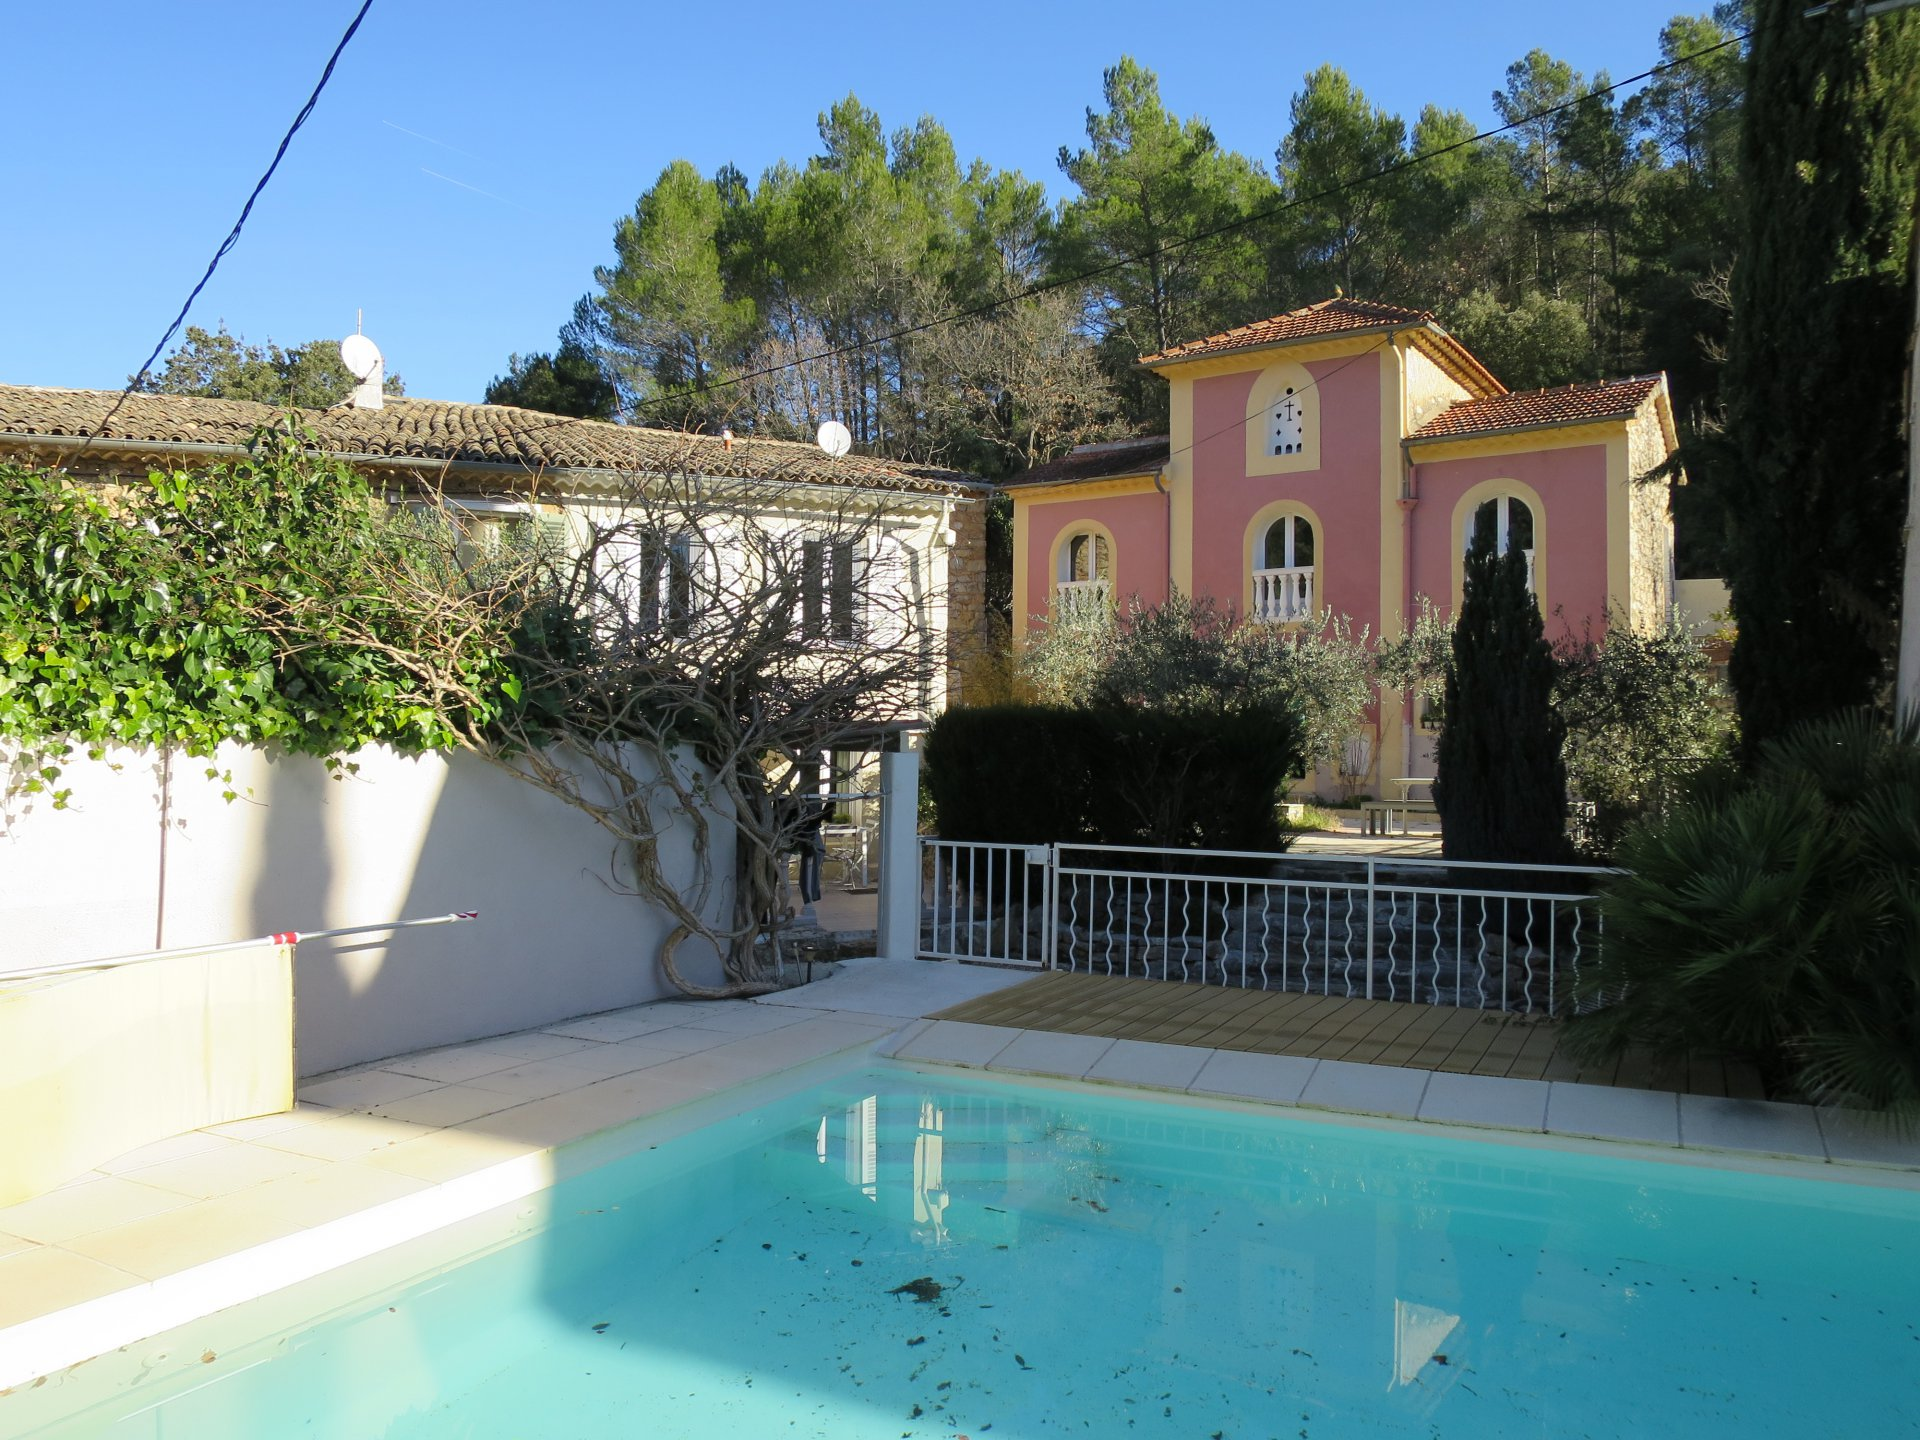 Old beautiful property consist of a mainhouse and several appartments on 1,6 hectare with pool